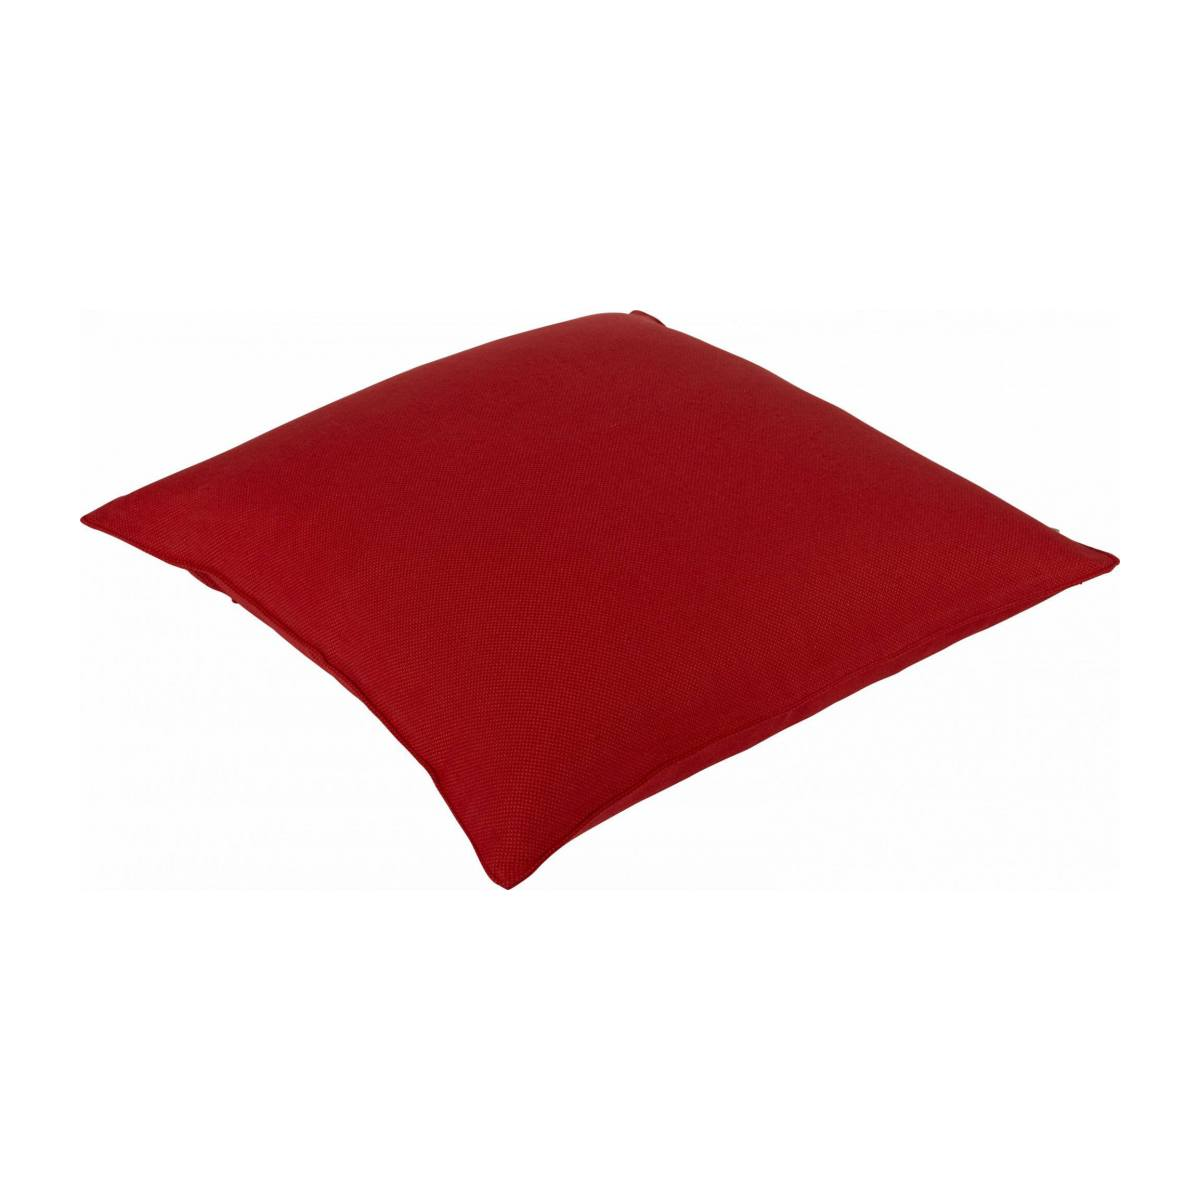 Red cushion 50x50cm n°2